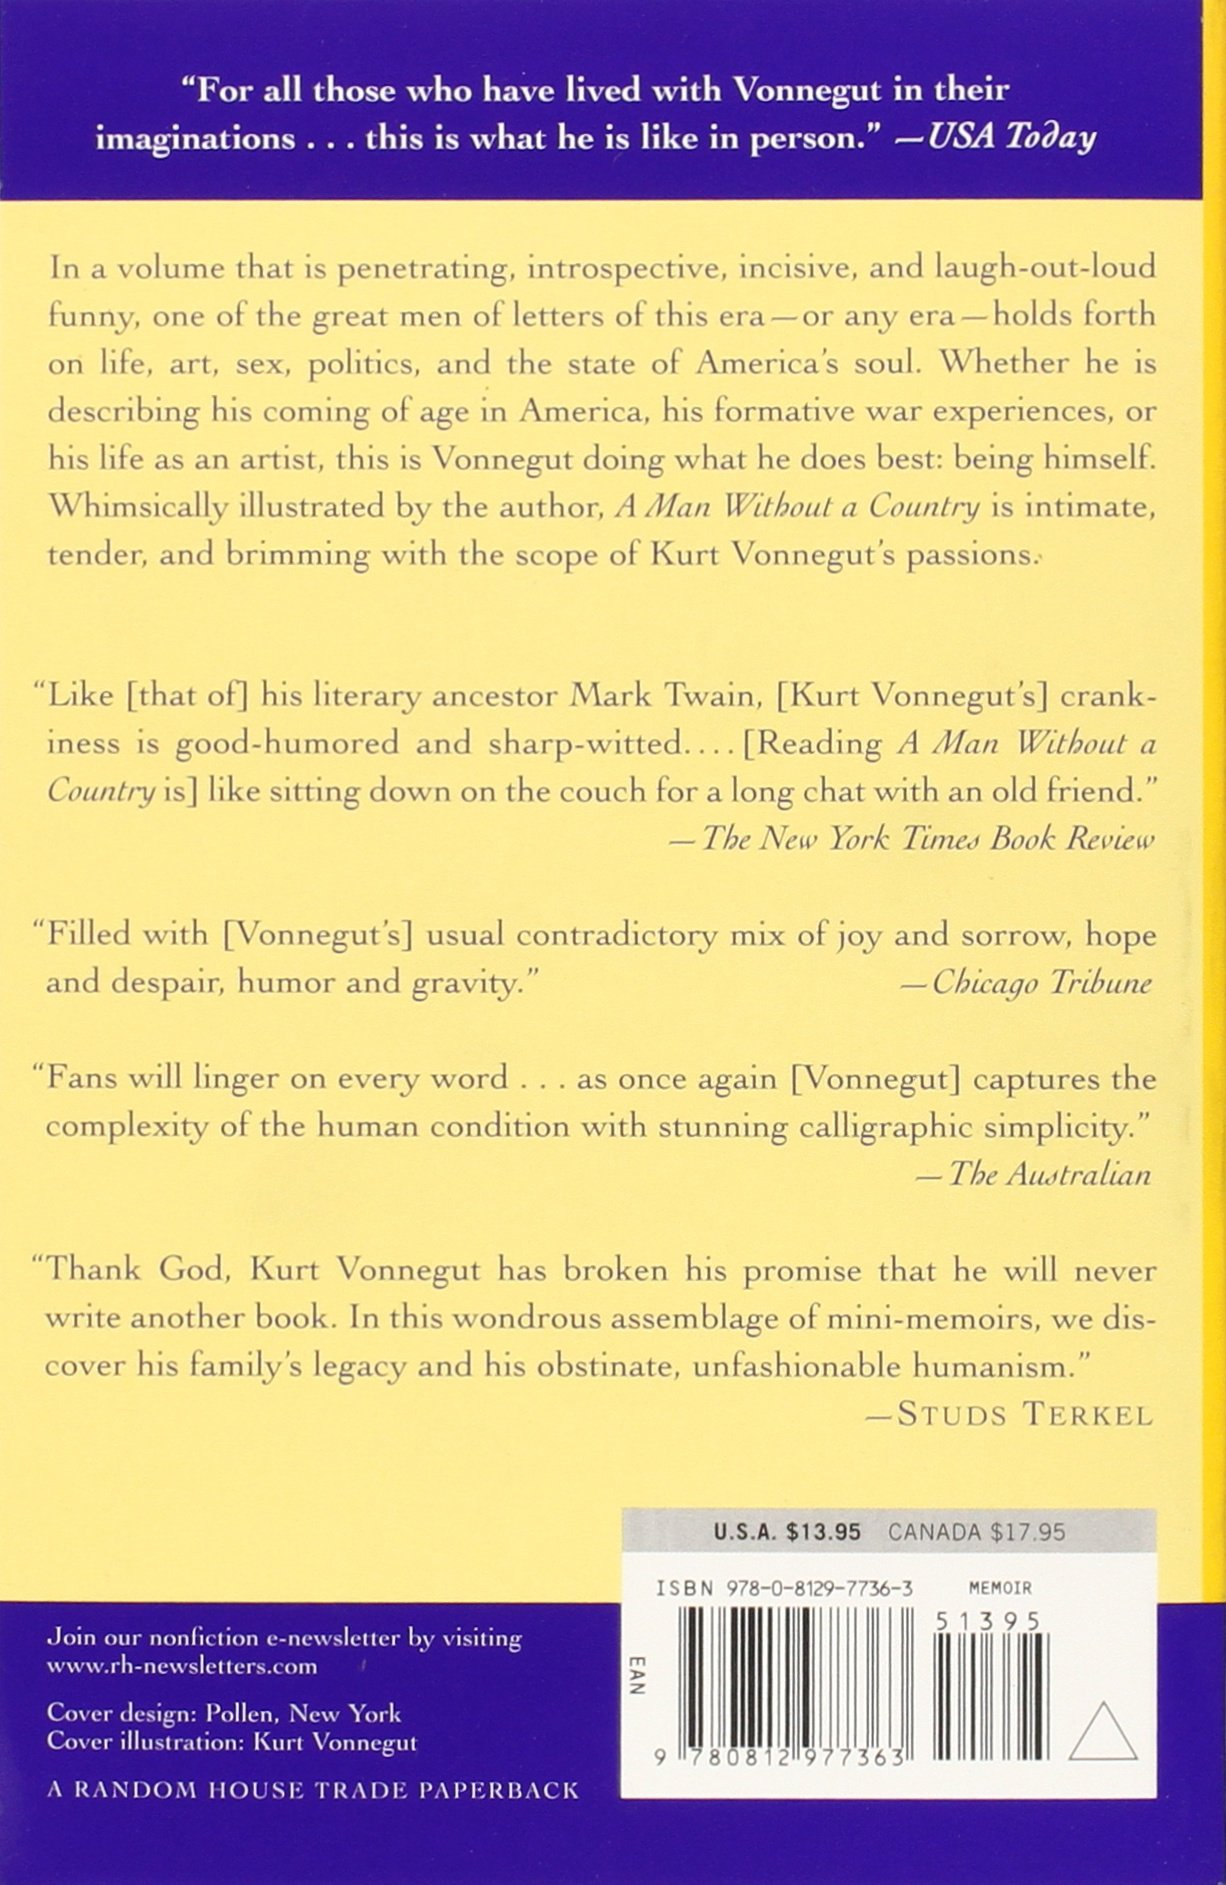 a man out a country kurt vonnegut 9780812977363 com a man out a country kurt vonnegut 9780812977363 com books